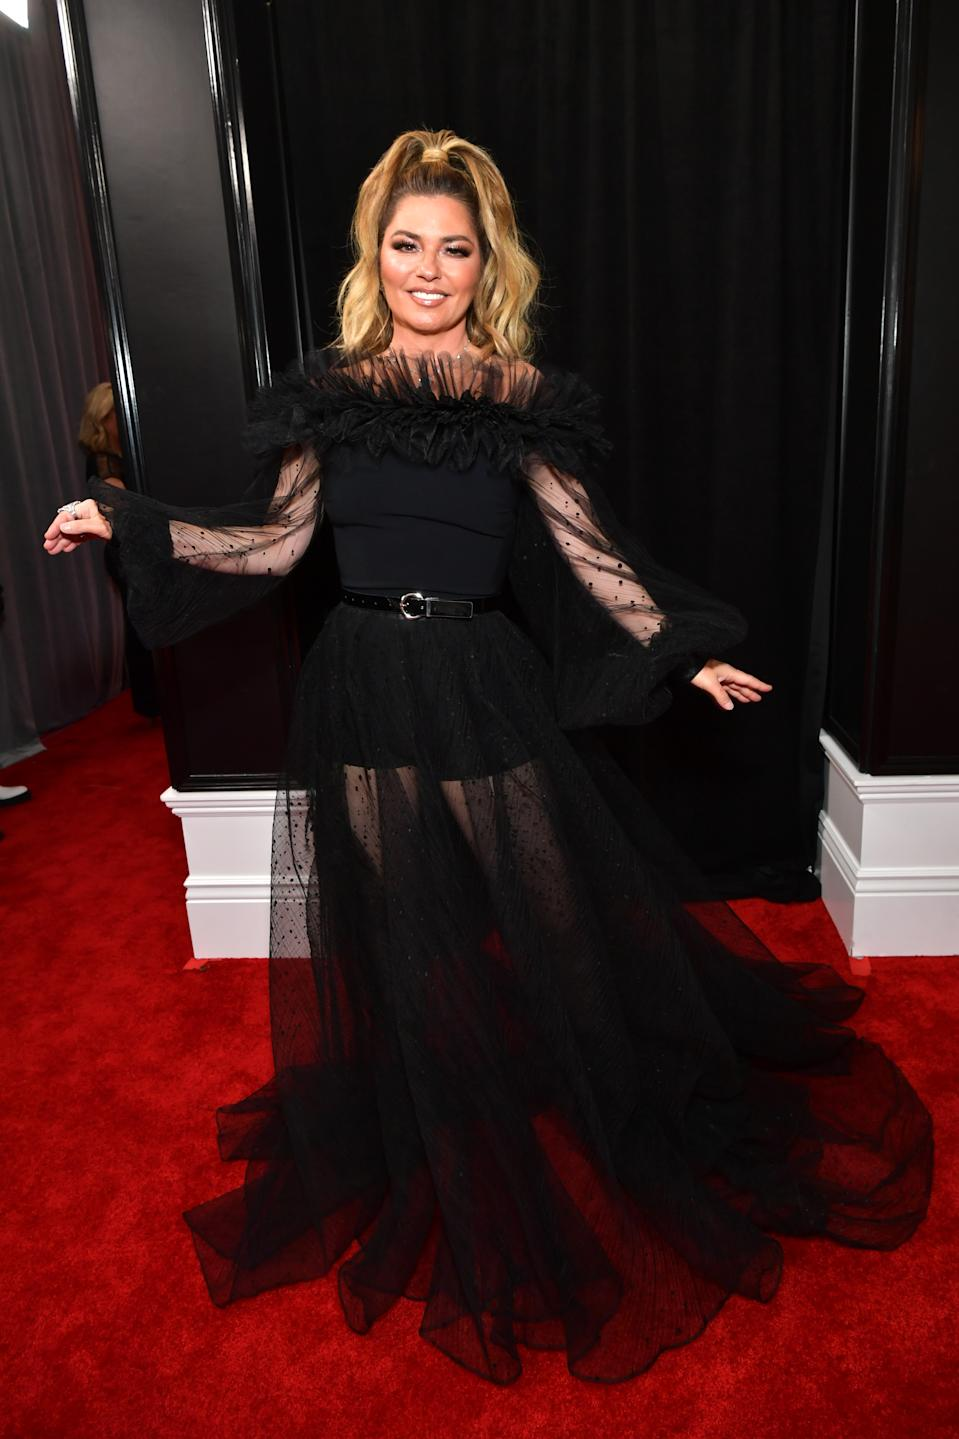 """Twain graced the Grammys red carpet in a sheer black ensemble with ruffled neckline, pulling her hair back into an """"I Dream of Genie""""-inspired ponytail. The 54-year-old Canadian singer-songwriter also took the stage as a presenter at this year's awards."""